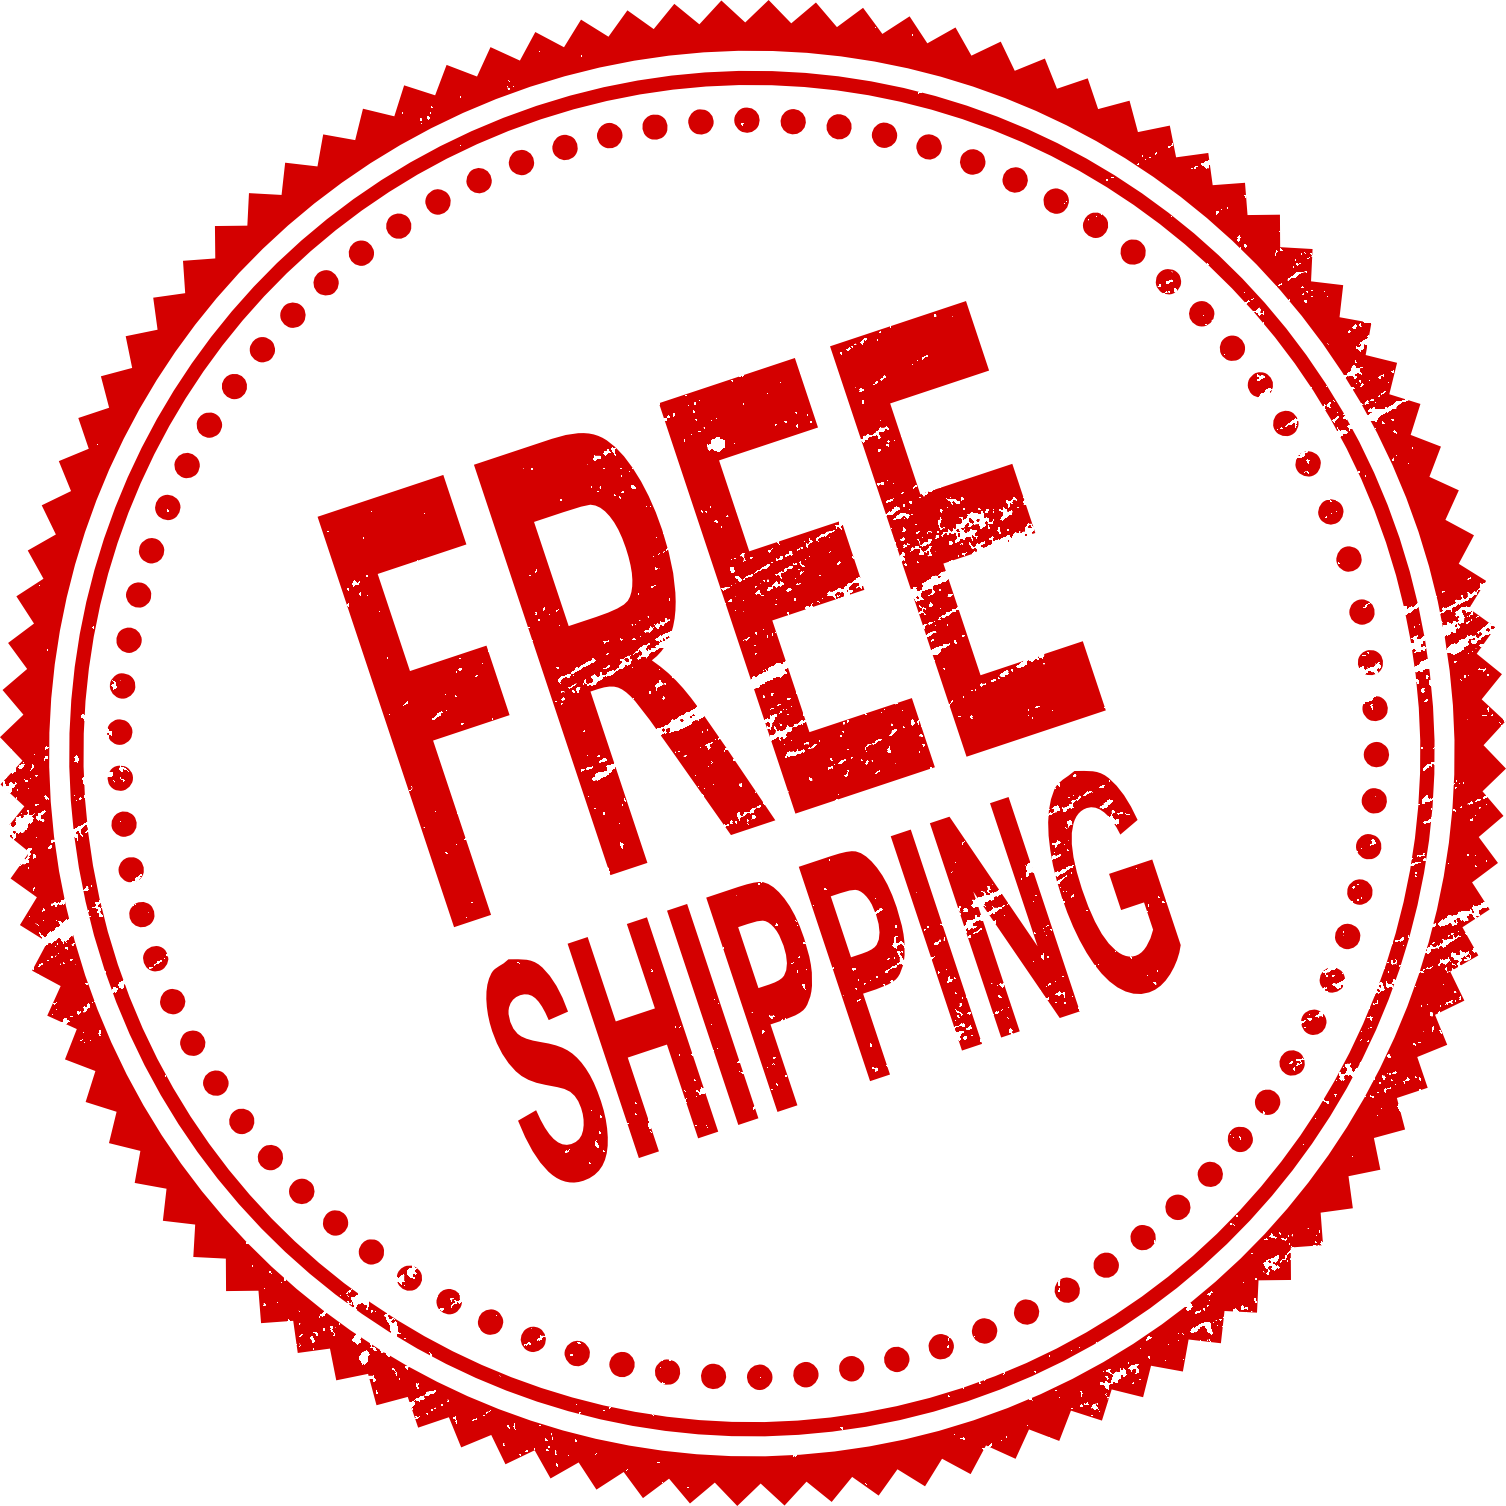 Free shipping logo png. Stamp vector transparent